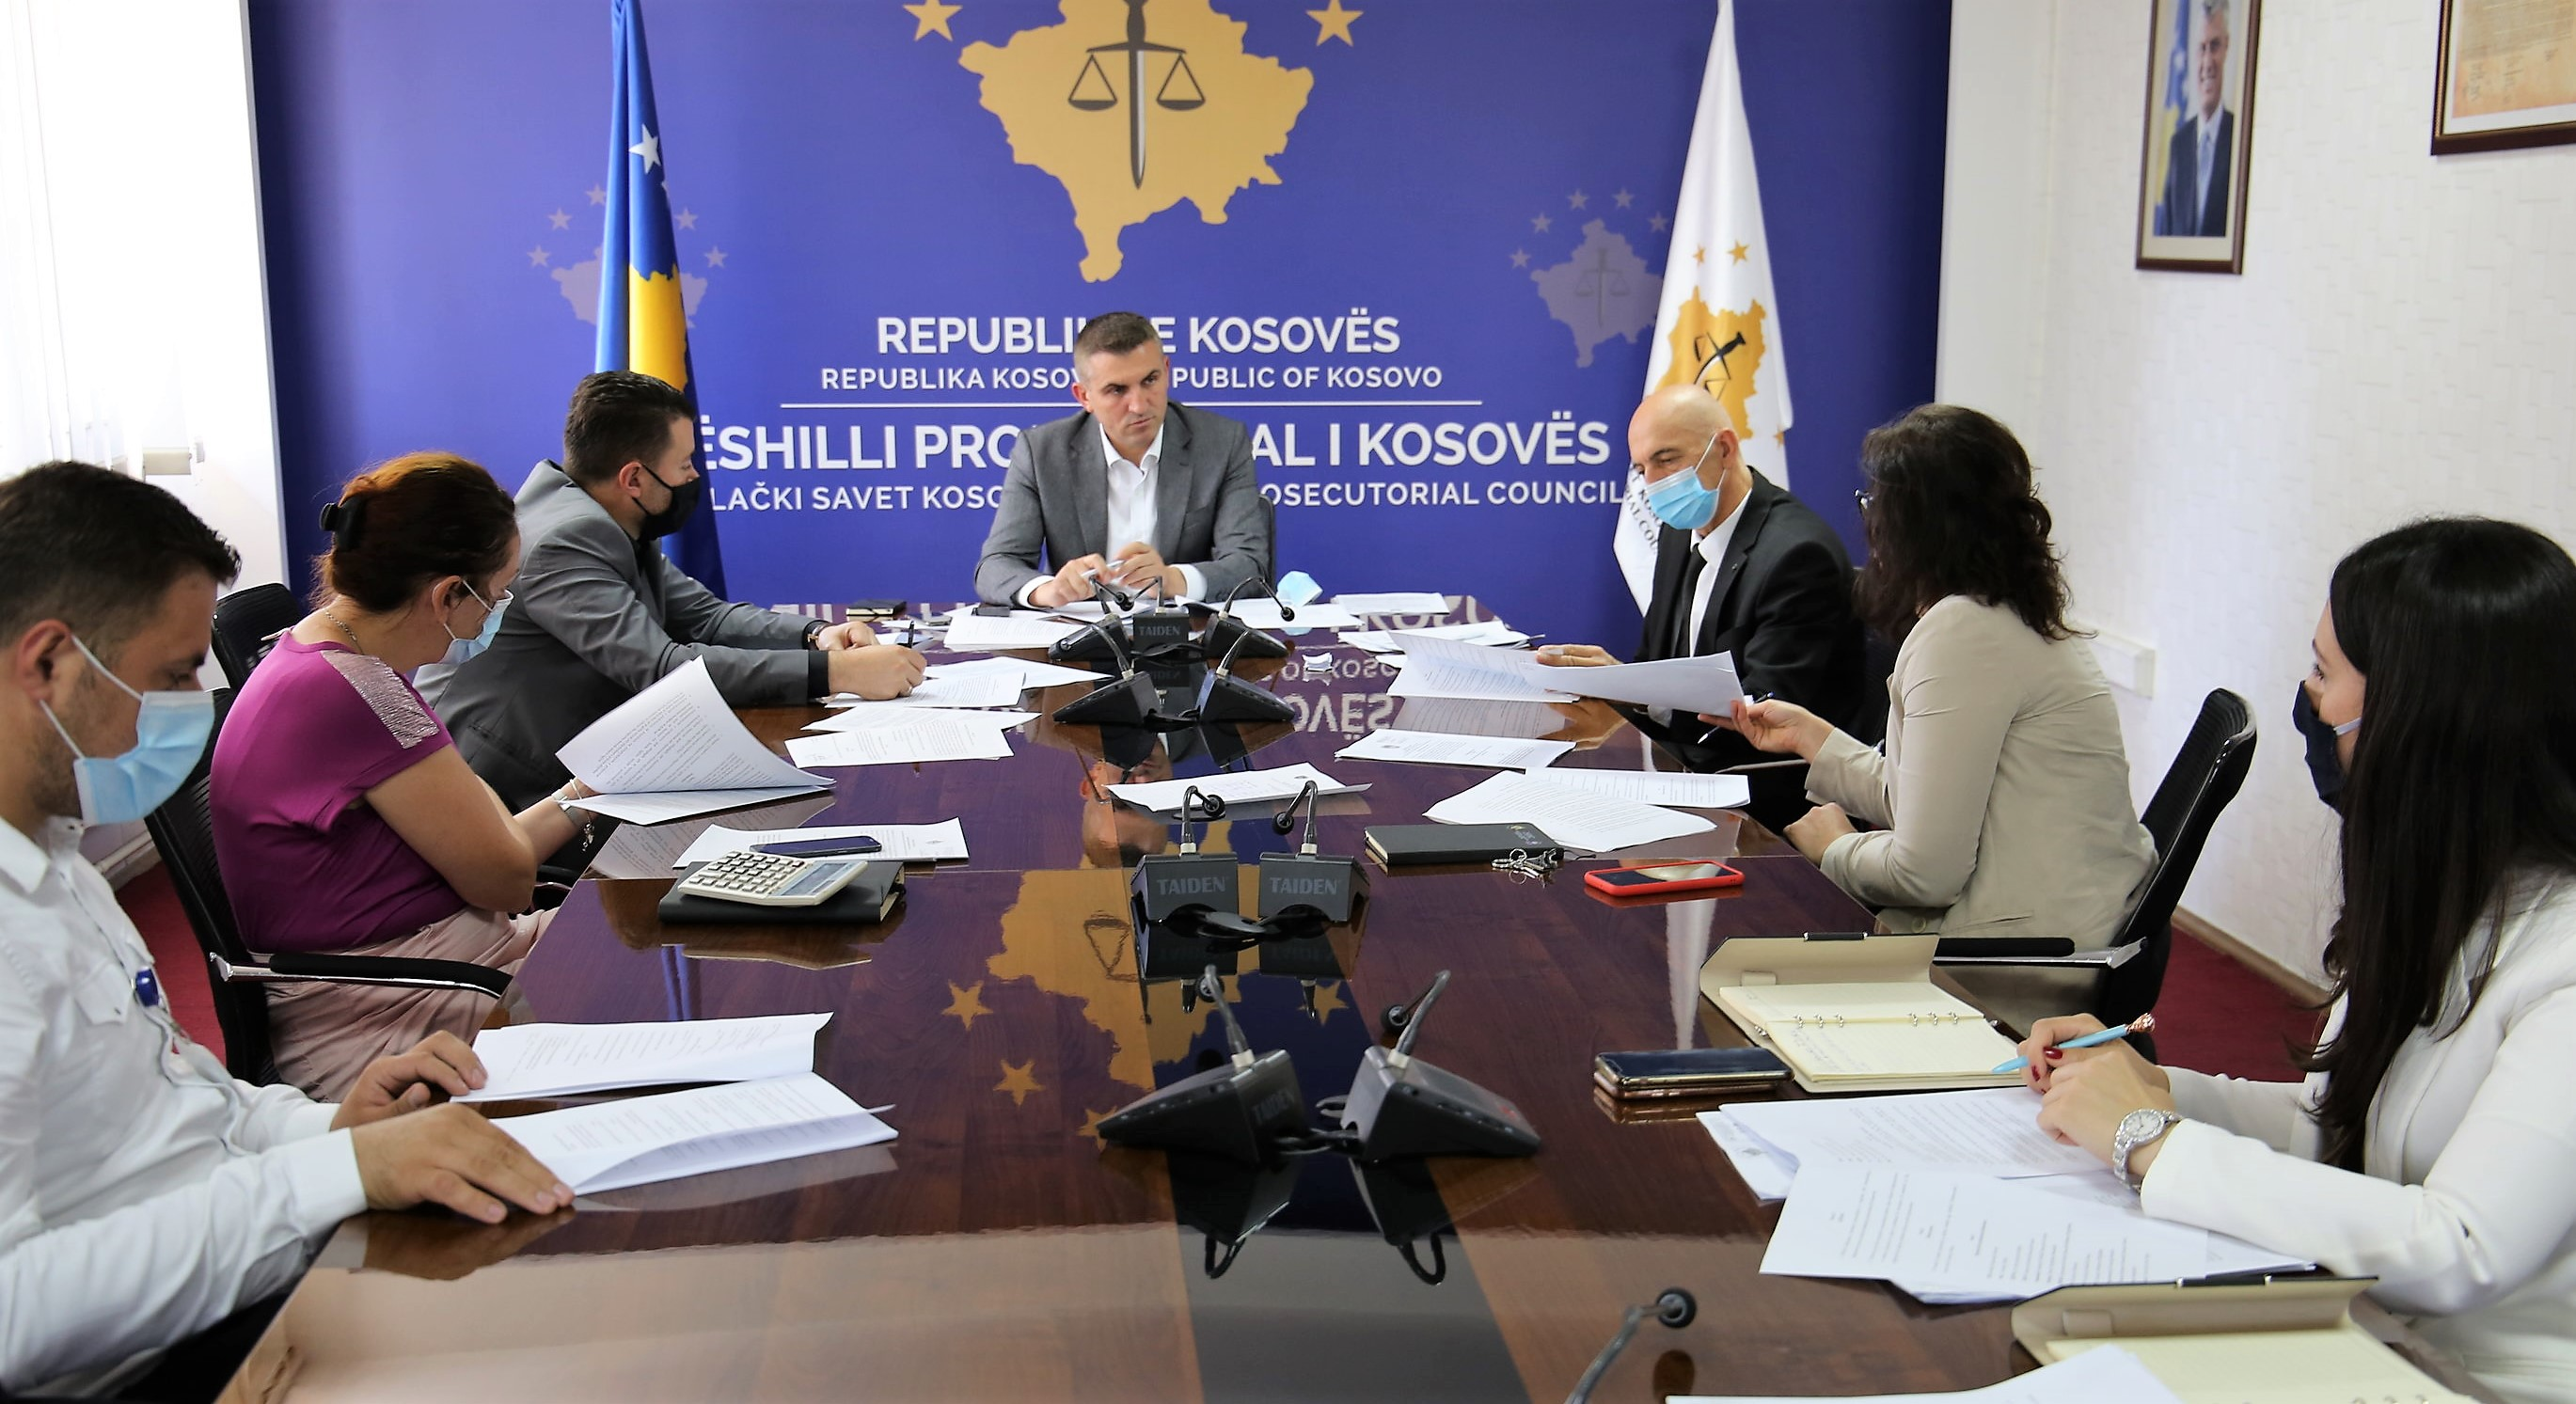 The draft Administrative Instruction for the management of public money expenditure is discussed